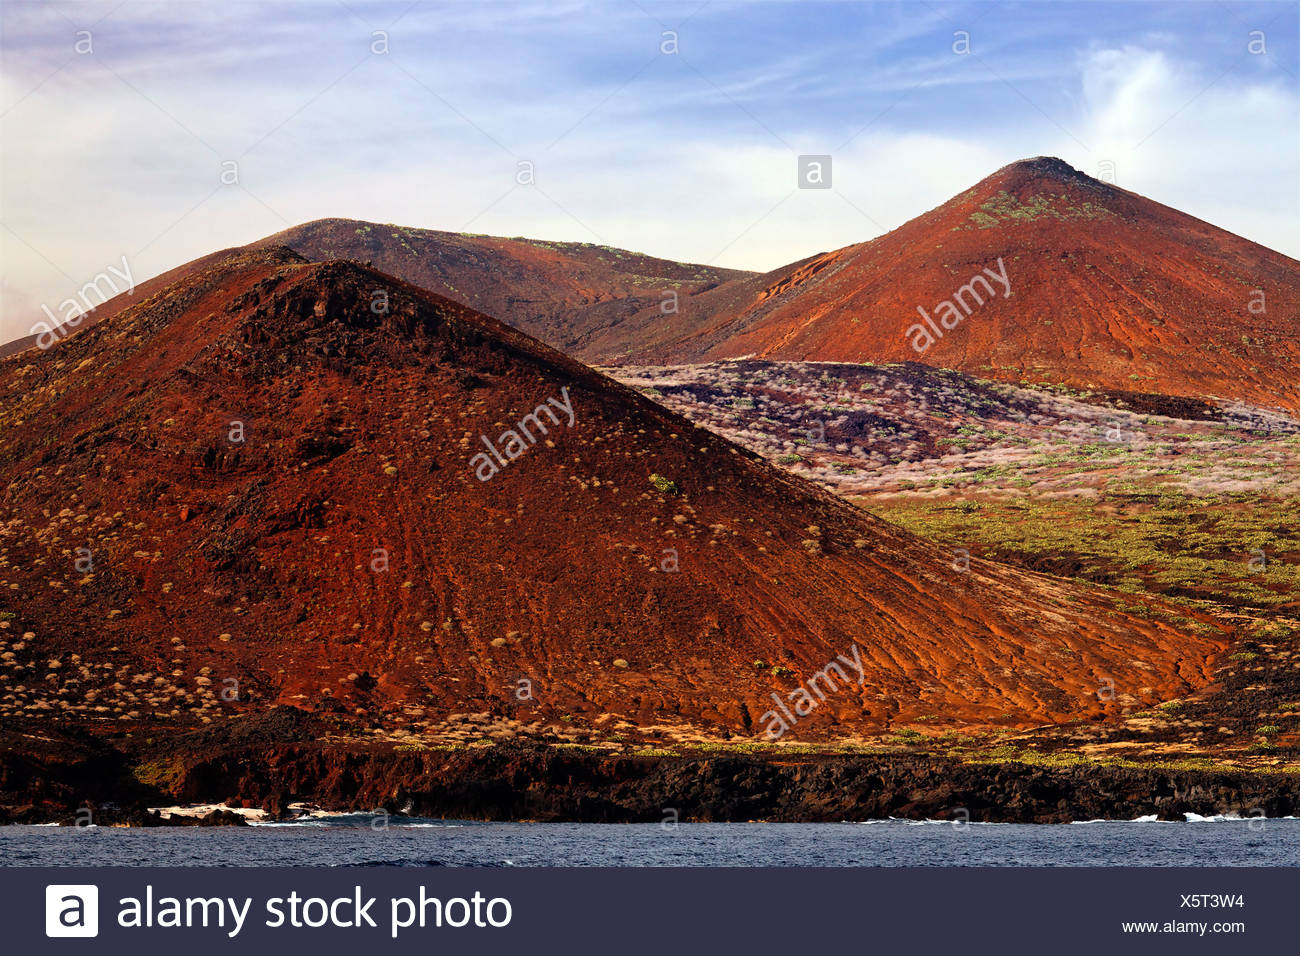 Barren landscape of volcanic hills on the coast, San Benedicto Island, near Socorro, Revillagigedo Islands, archipelago, Mexico - Stock Image